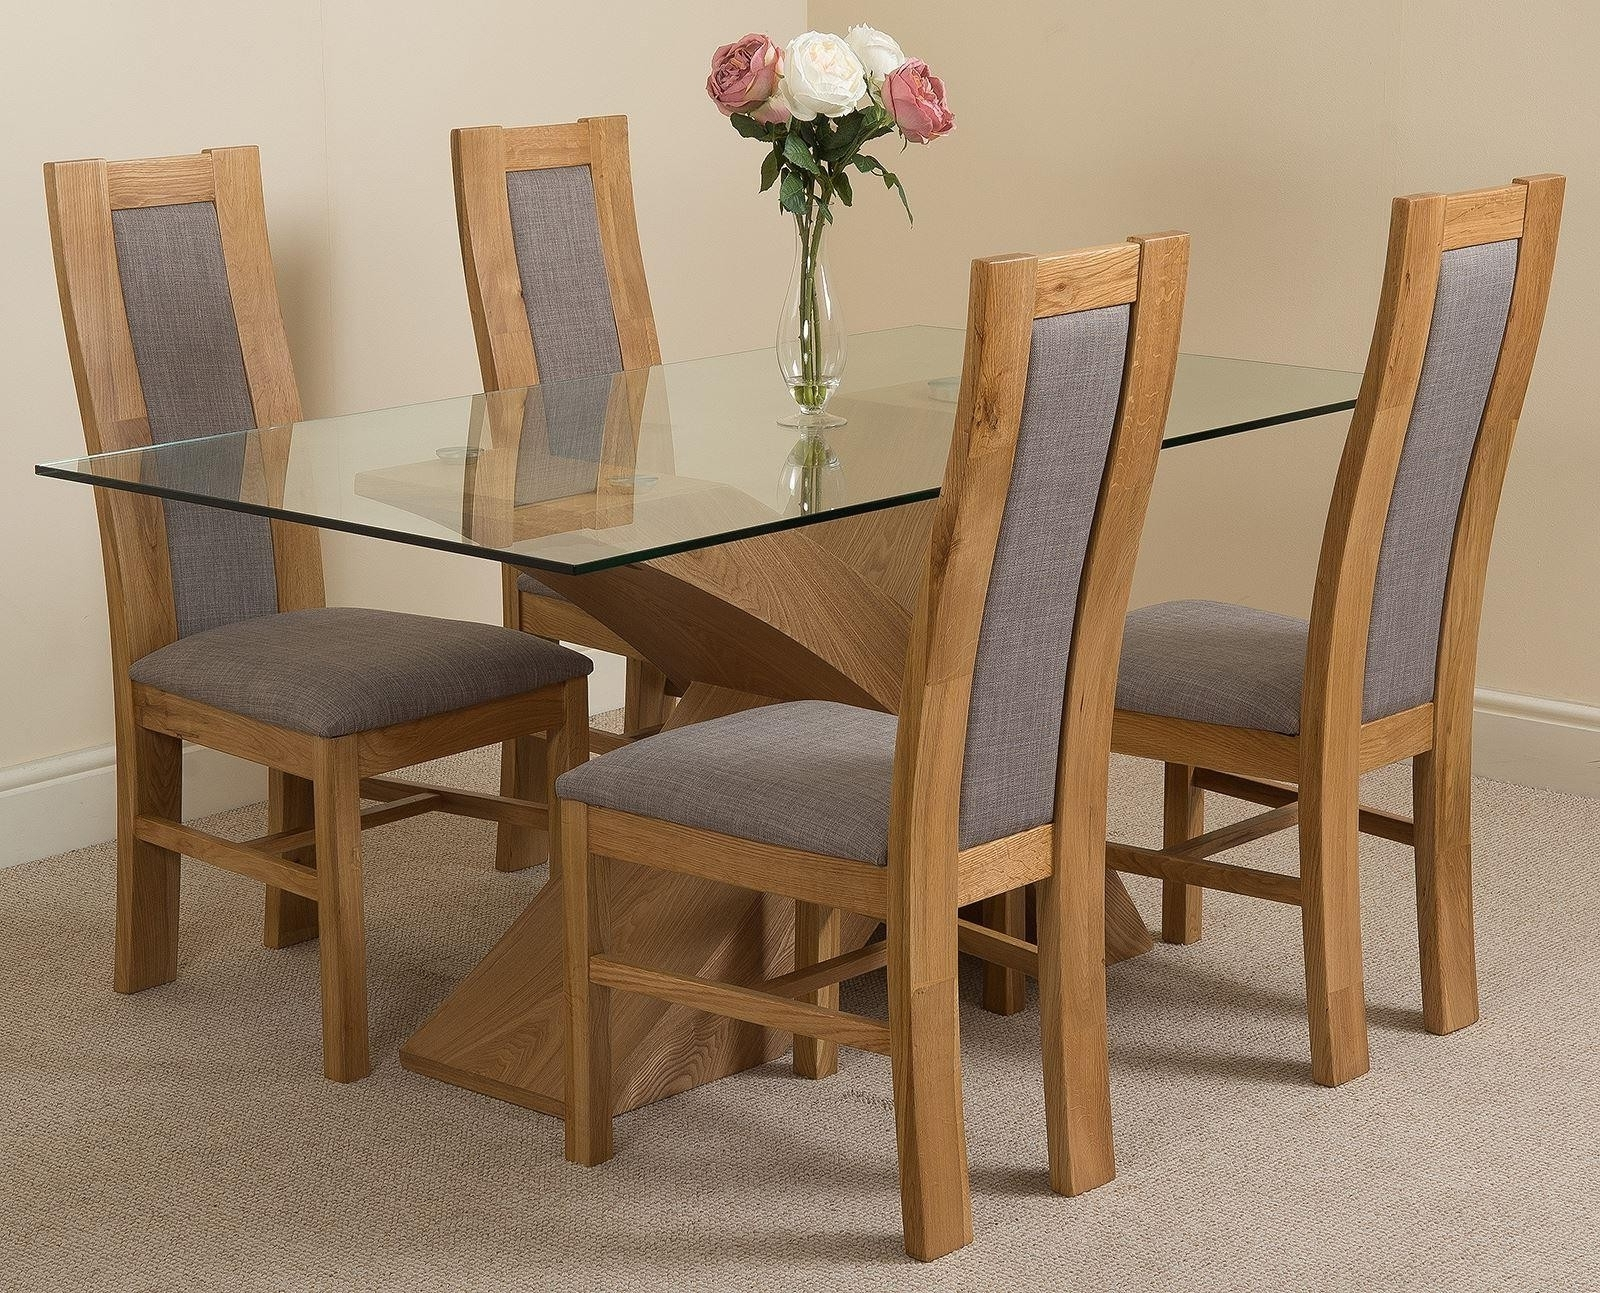 Oak And Glass Dining Tables And Chairs Intended For Best And Newest Valencia Oak 160Cm Wood And Glass Dining Table With 4 Stanford Solid (View 16 of 25)